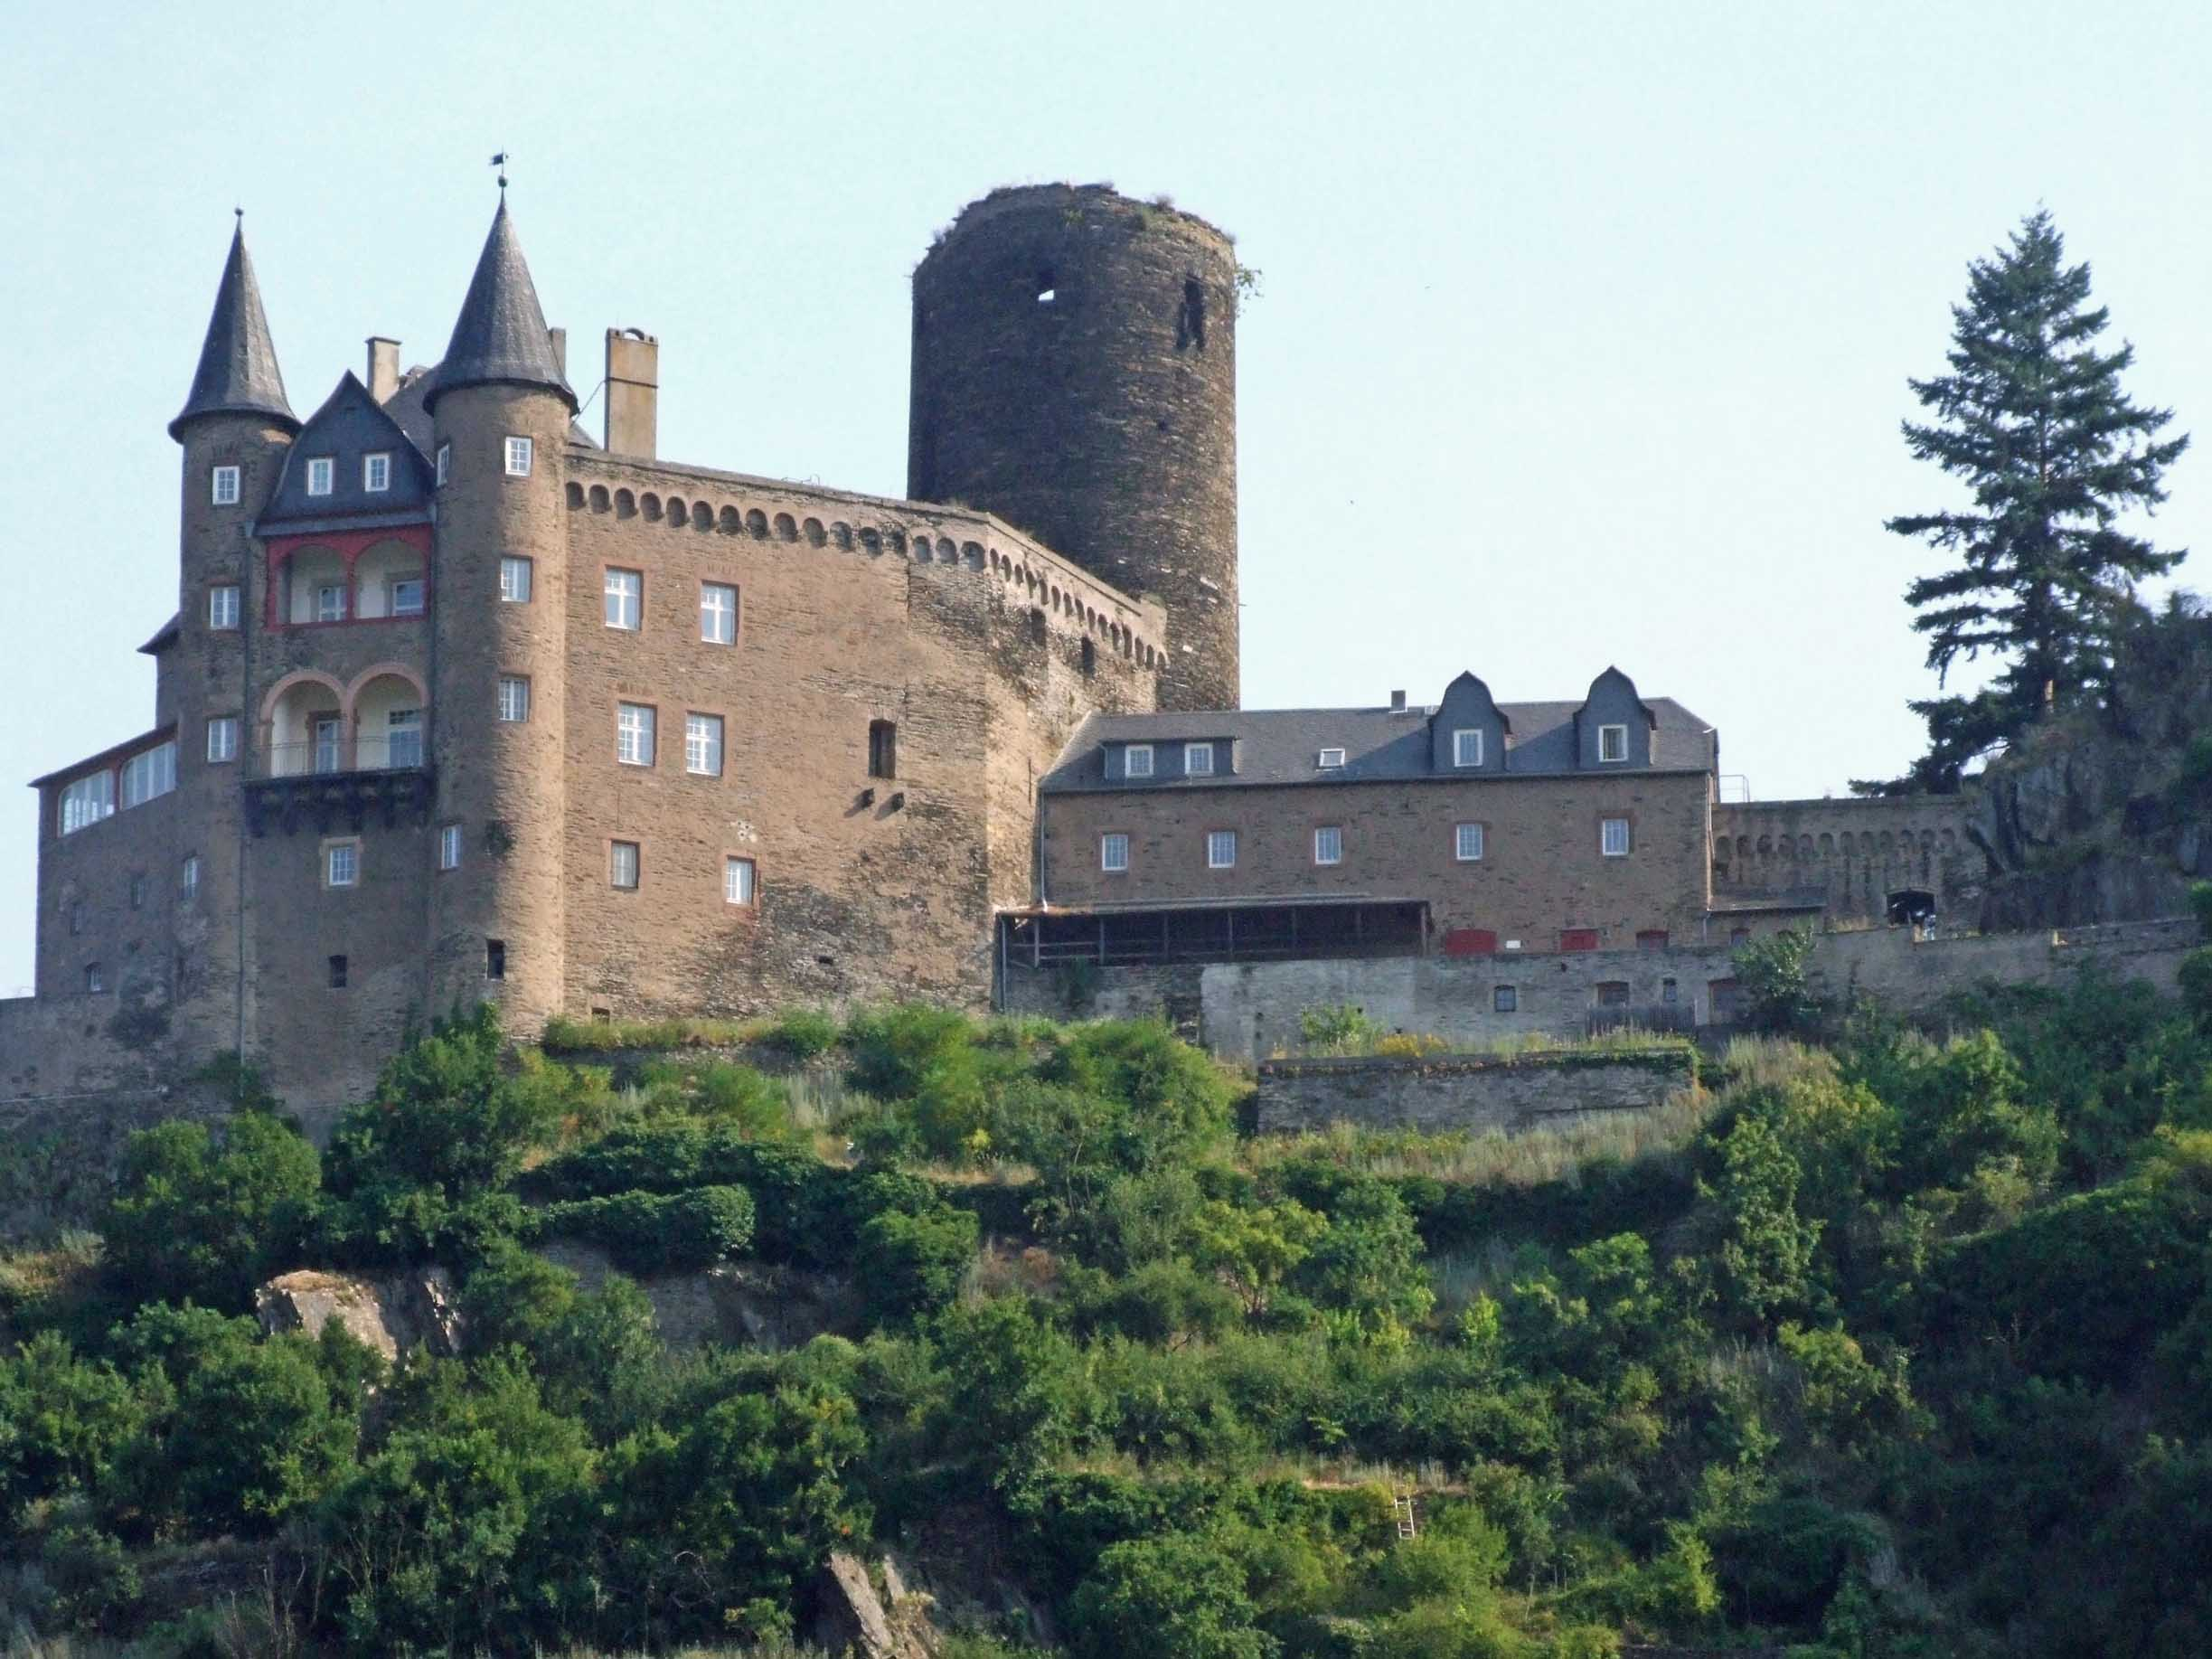 Large castle on a hill top